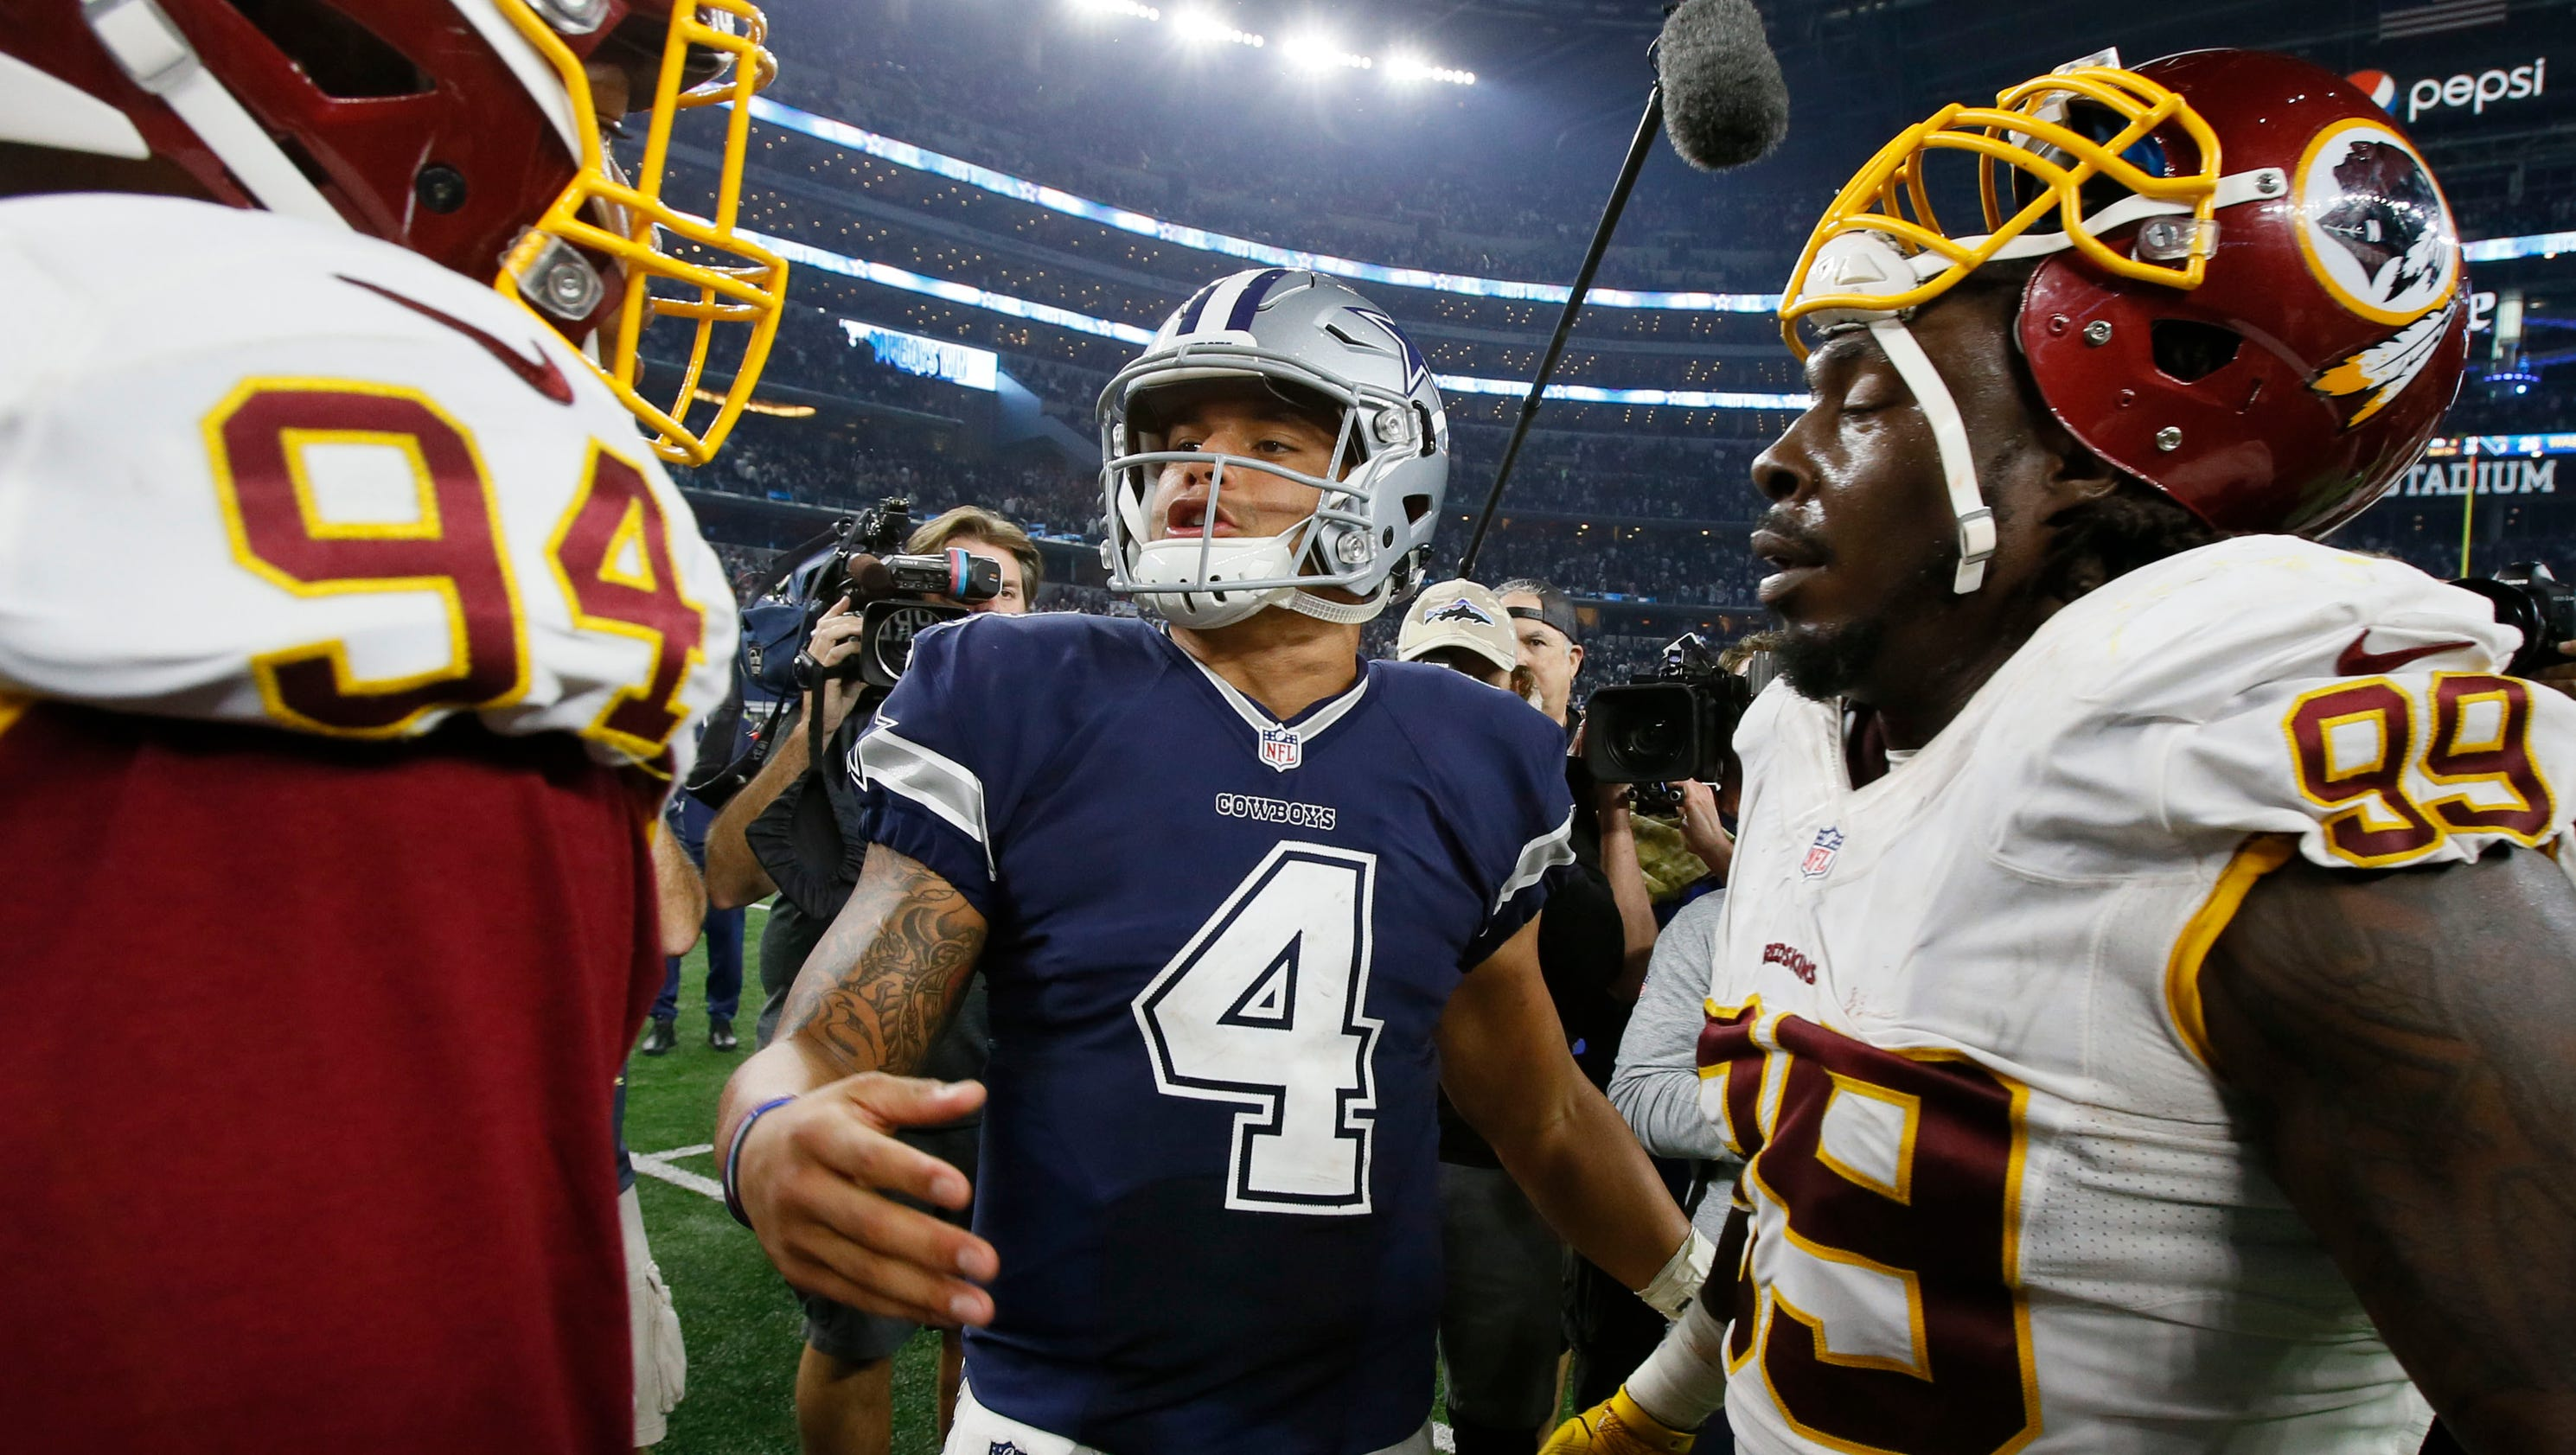 CowboysRedskins was mostwatched regularseason game in Fox history